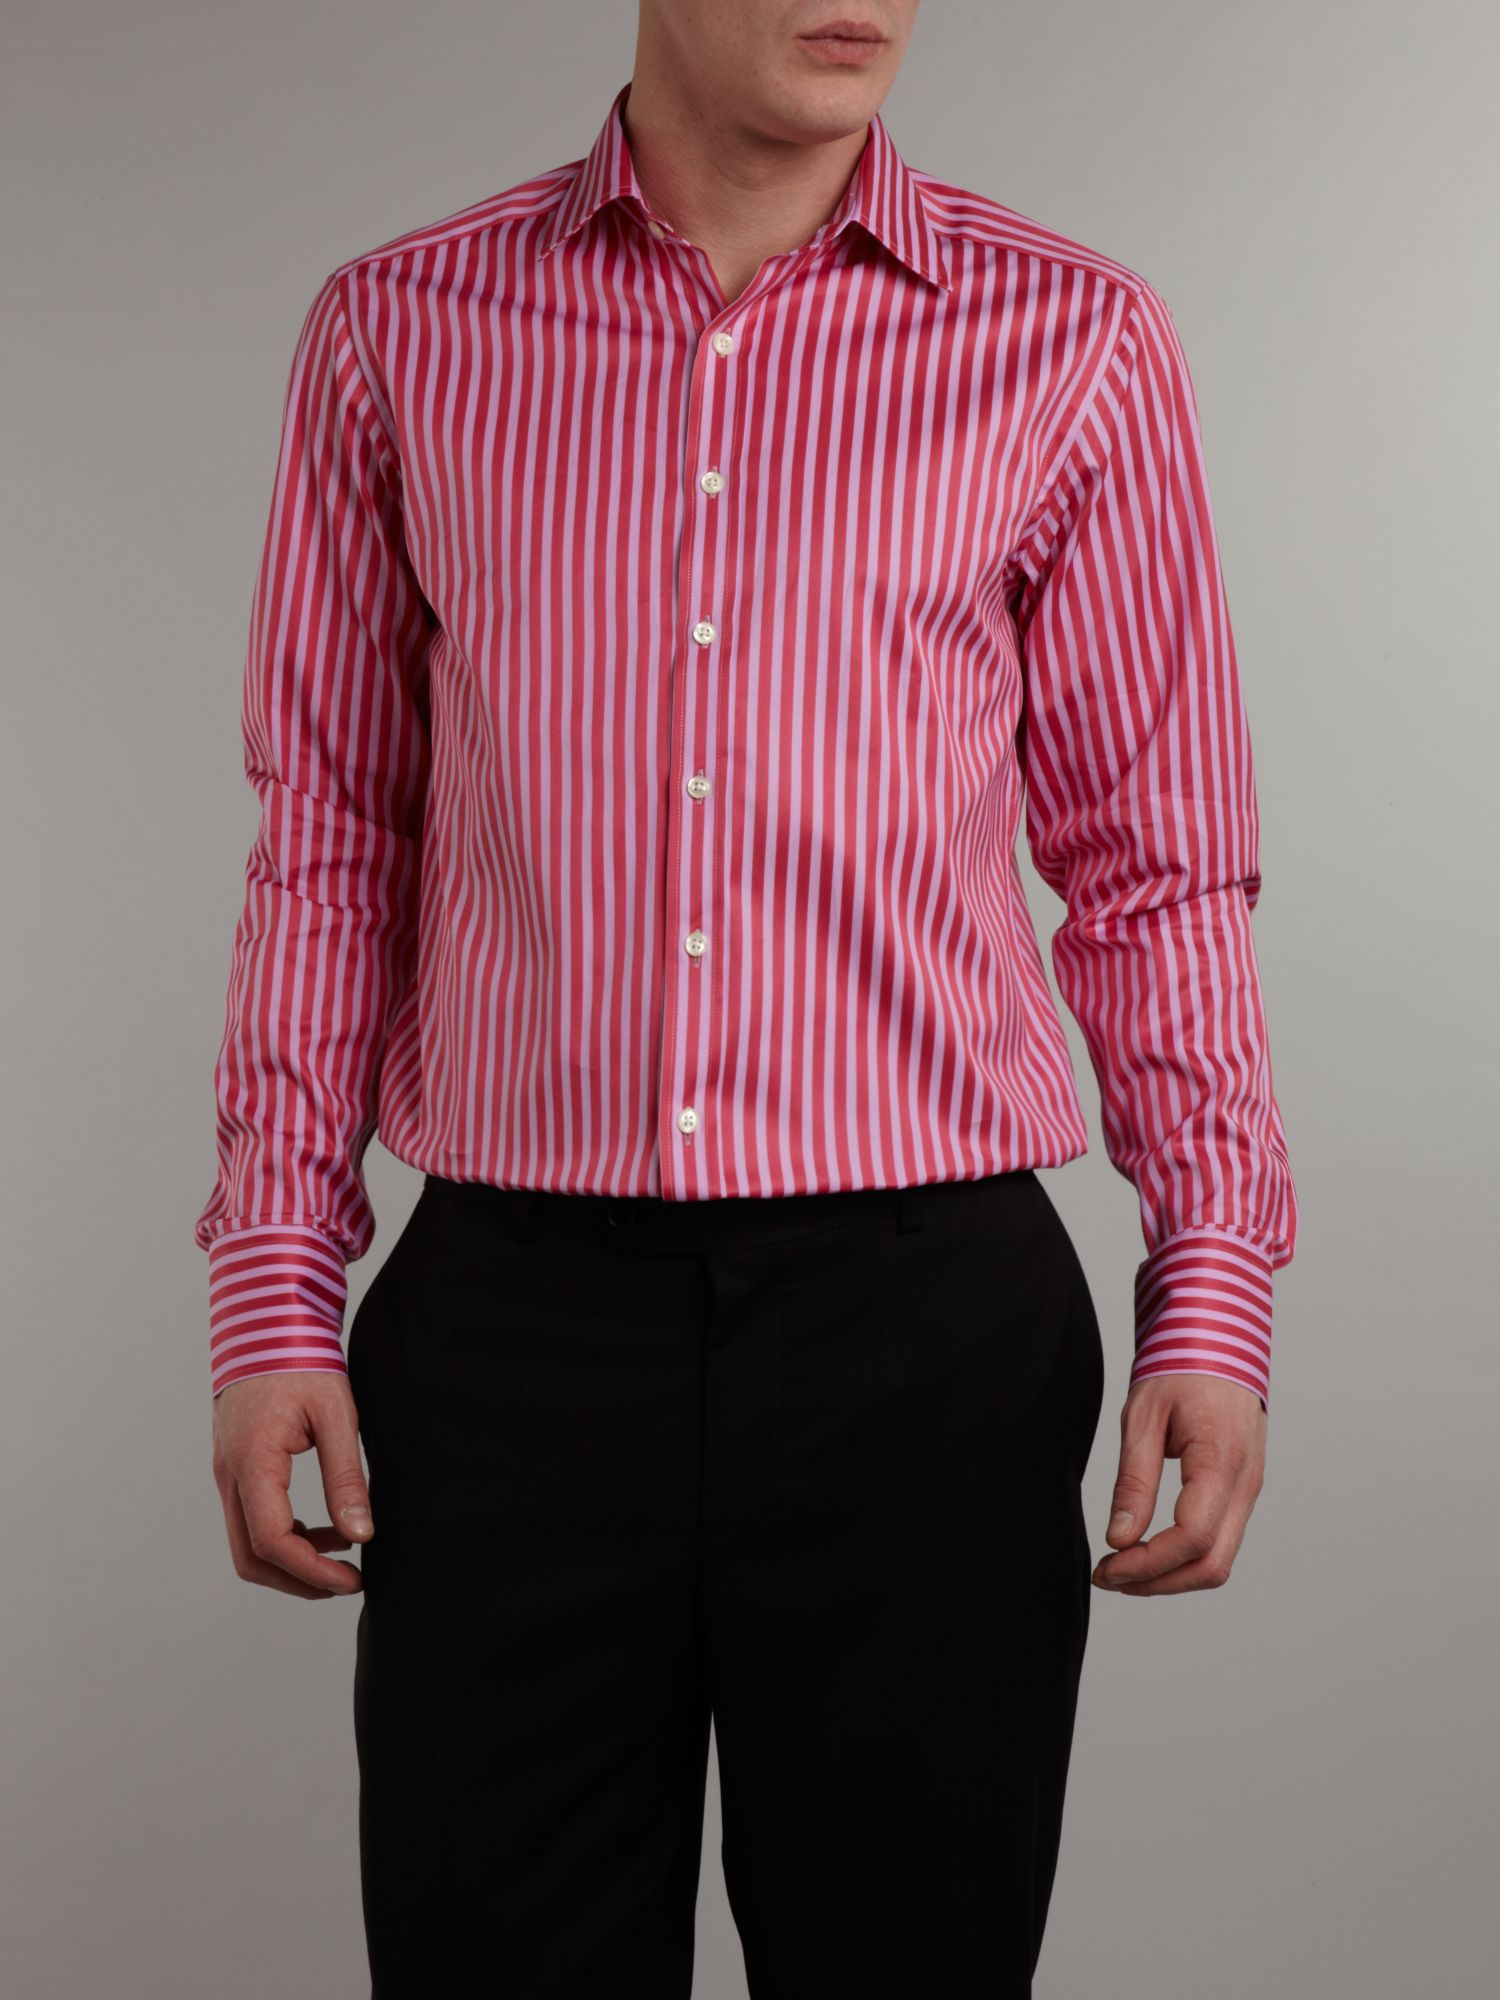 Bold satin stripe 3 button cuff shirt